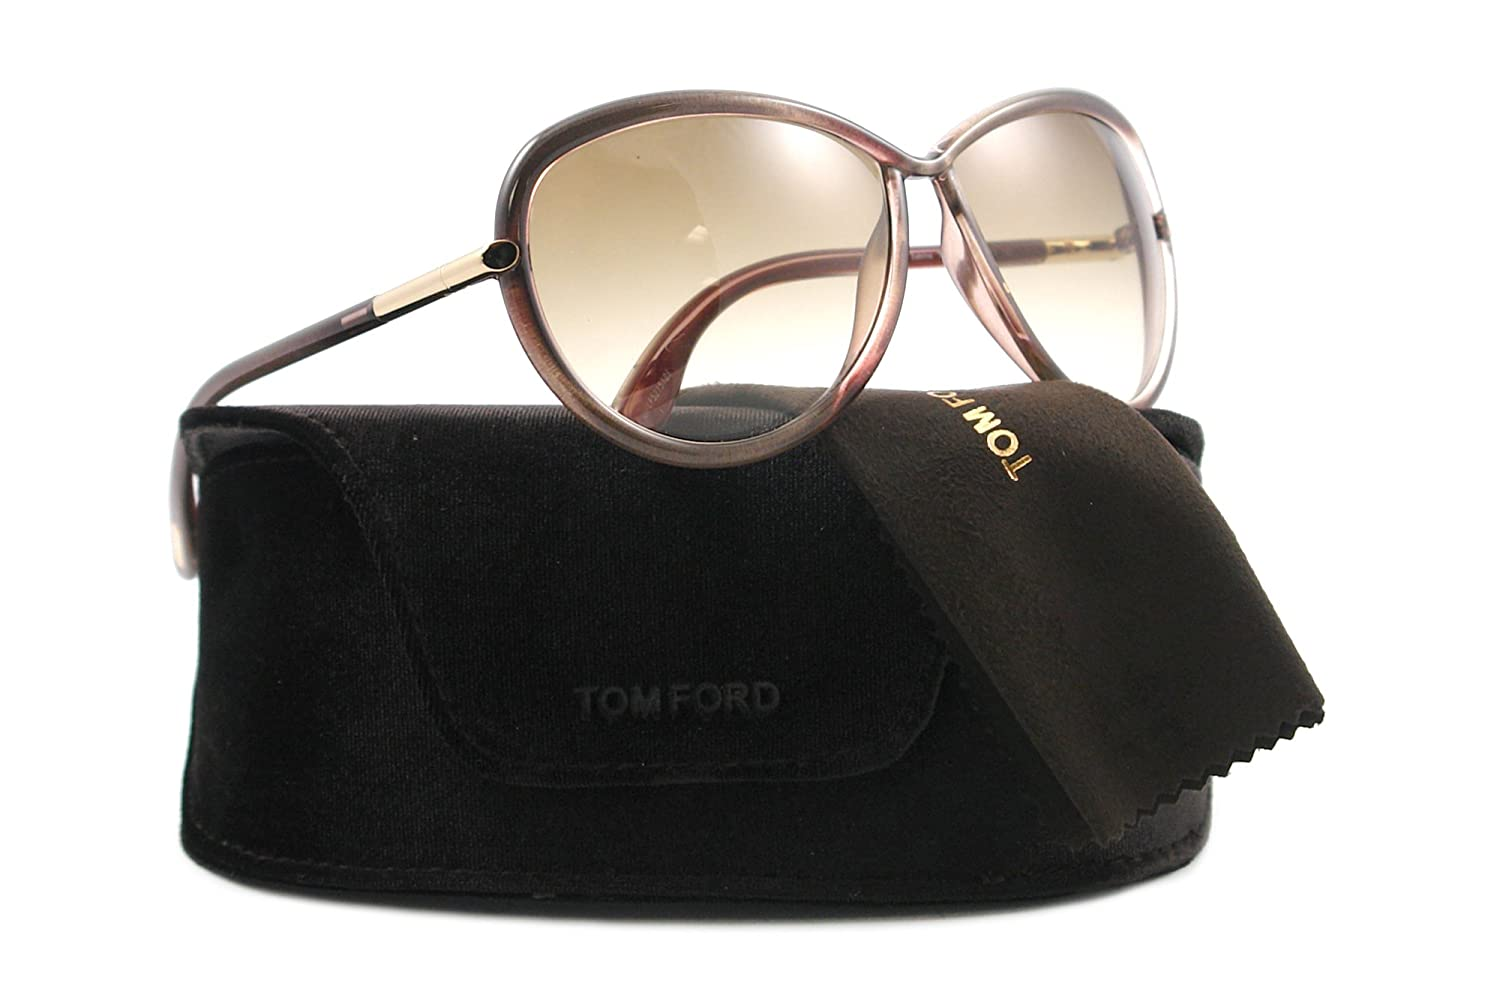 44f923c8ed Tom Ford Tf 161 Sabrina 59F Brown Sunglasses  Amazon.ca  Clothing    Accessories